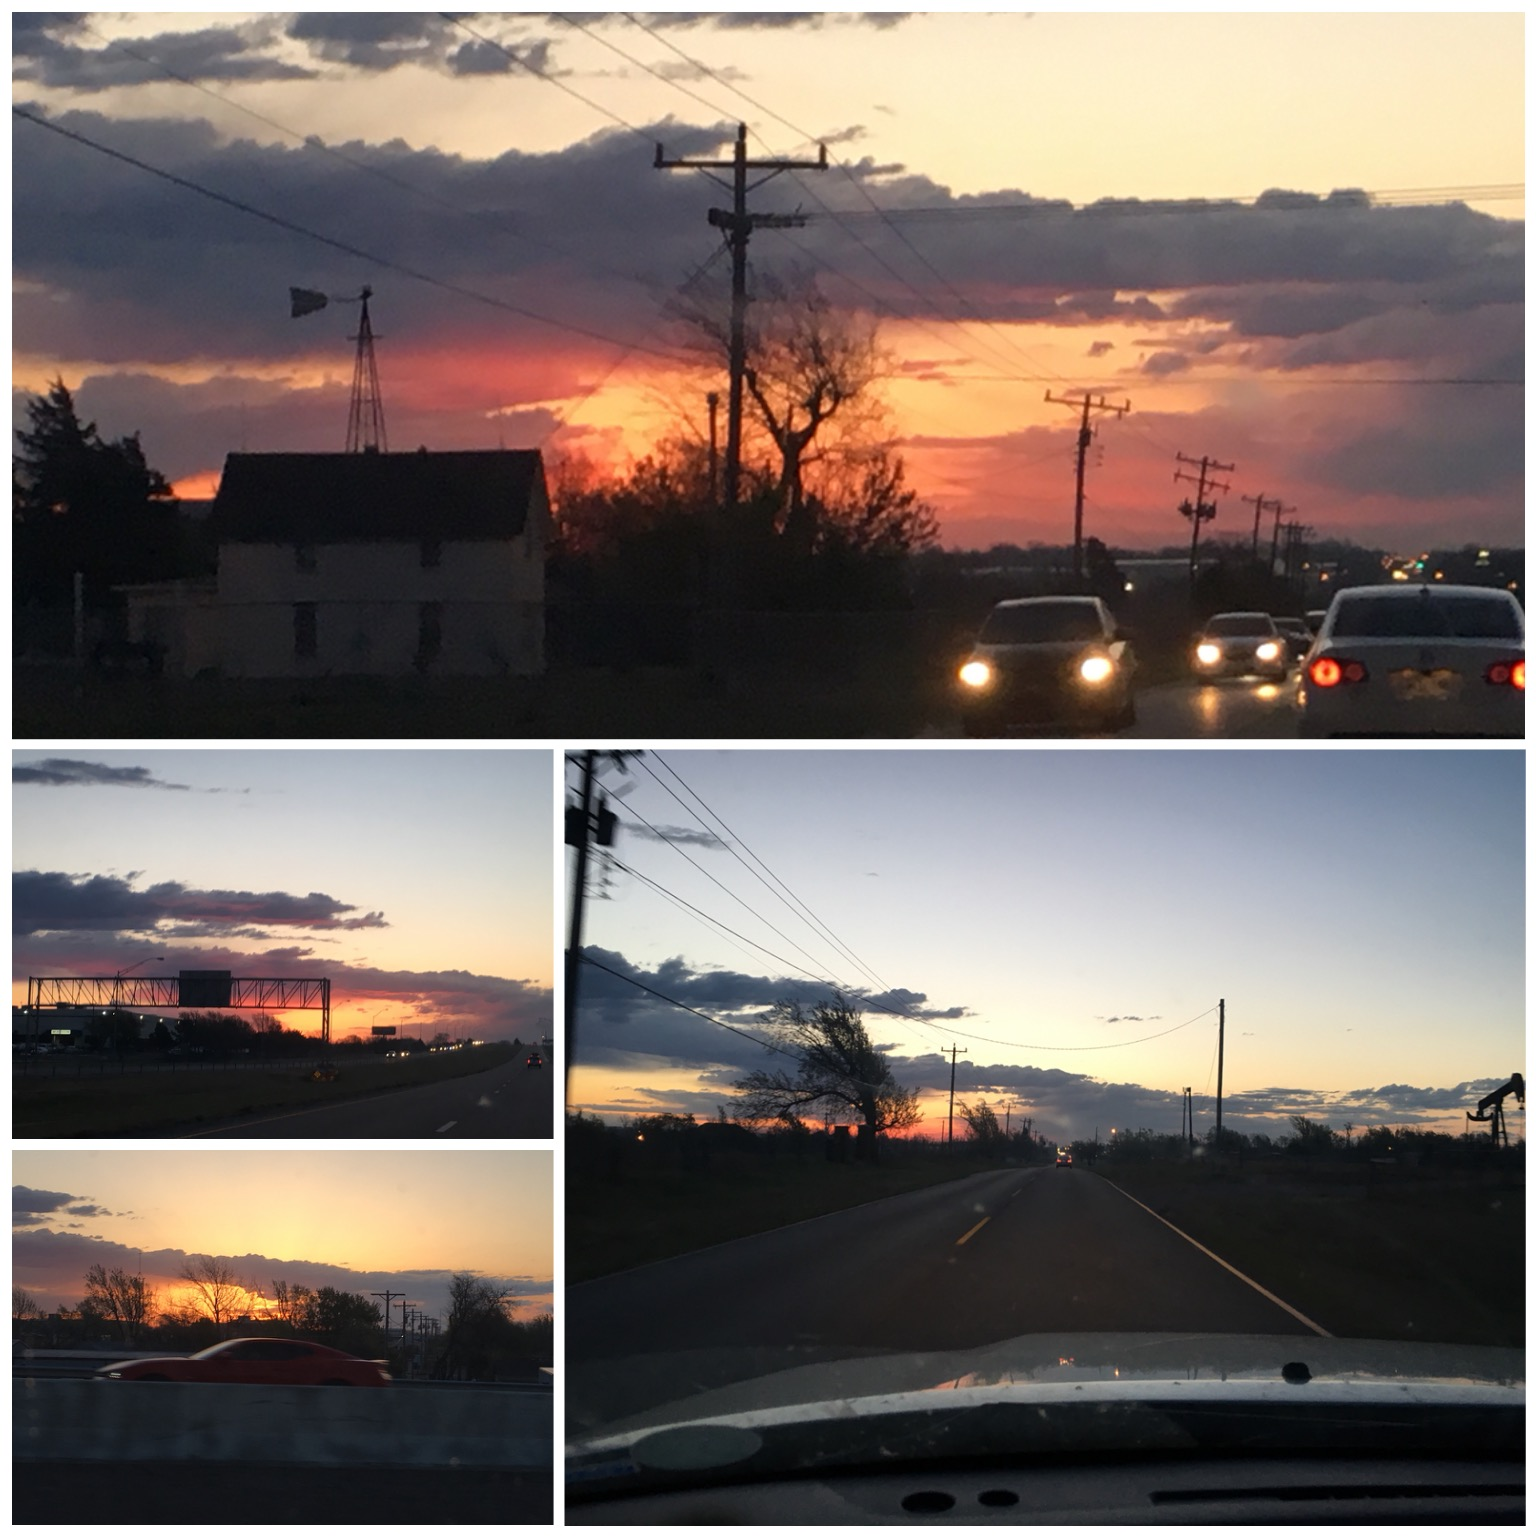 We had a VERY busy day planned so I left a little earlier than usual. Oklahoma may have wind sweeping down the plains but the skies make up for some of its neurotic behavior. Also, Ken Toey , that vroom vroom reminded me of a certain one you carry in your pocket.